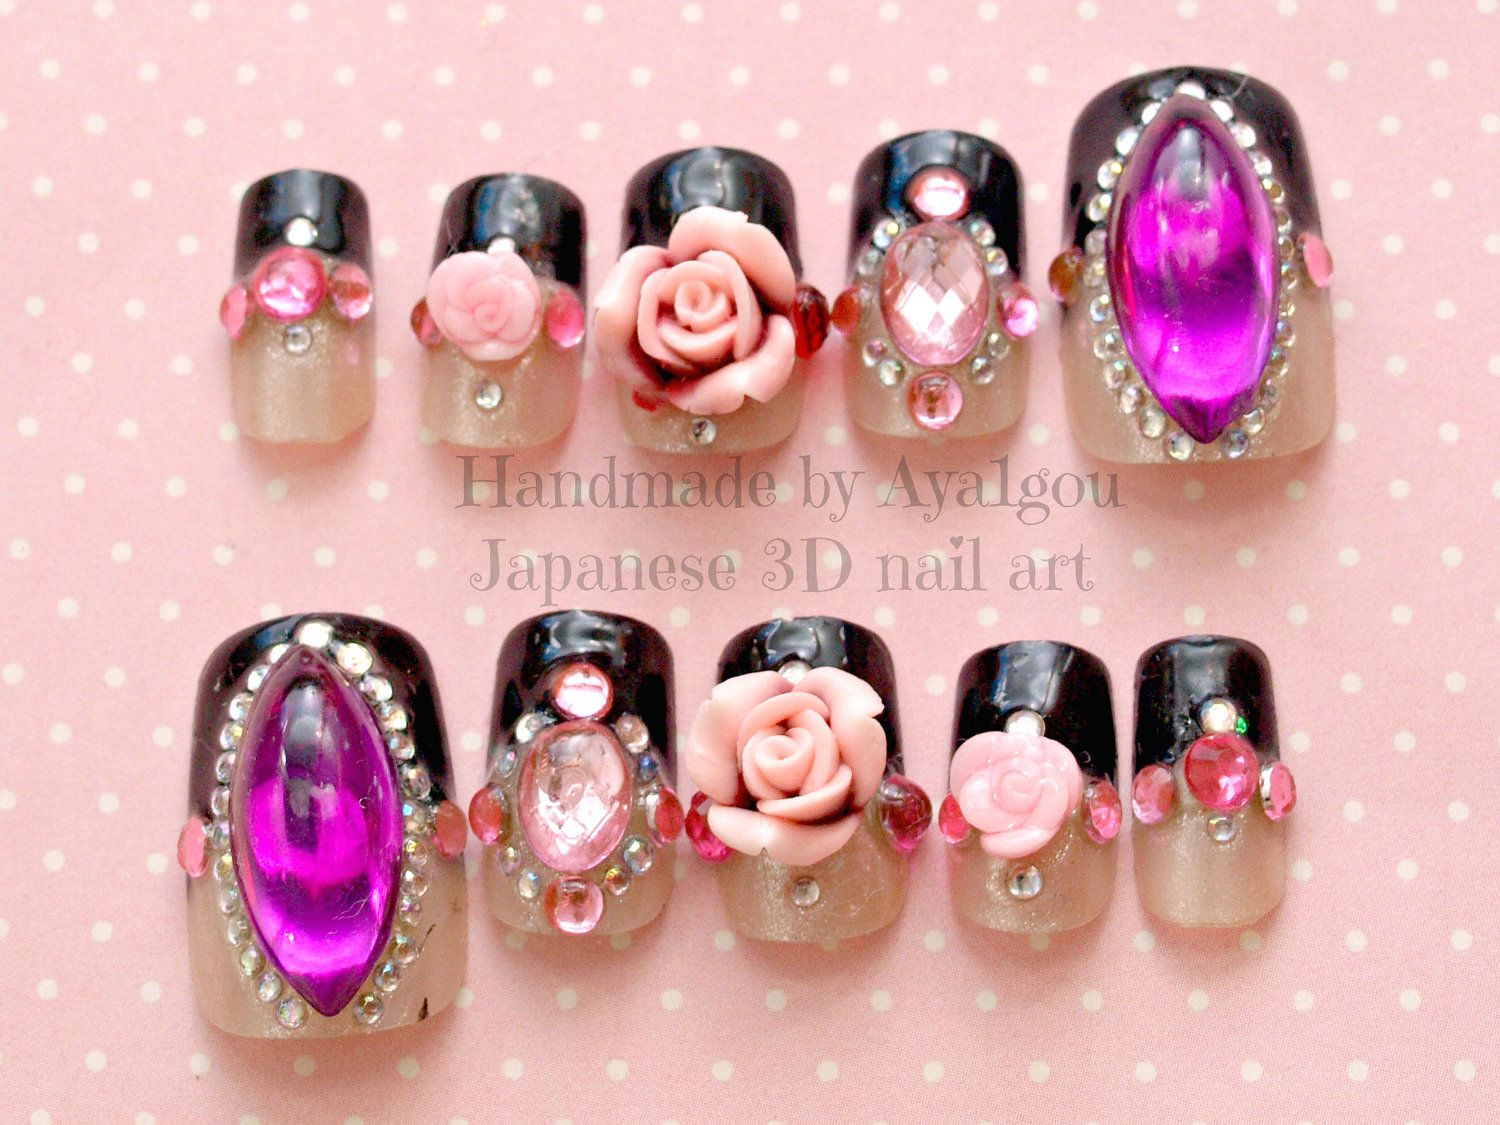 Majestic Japanese 3D Nail Art Design Idea With Big Glamorous Rhinestones And Roses Ornament On Black Mixed Beige Nails Color By Aya1gou